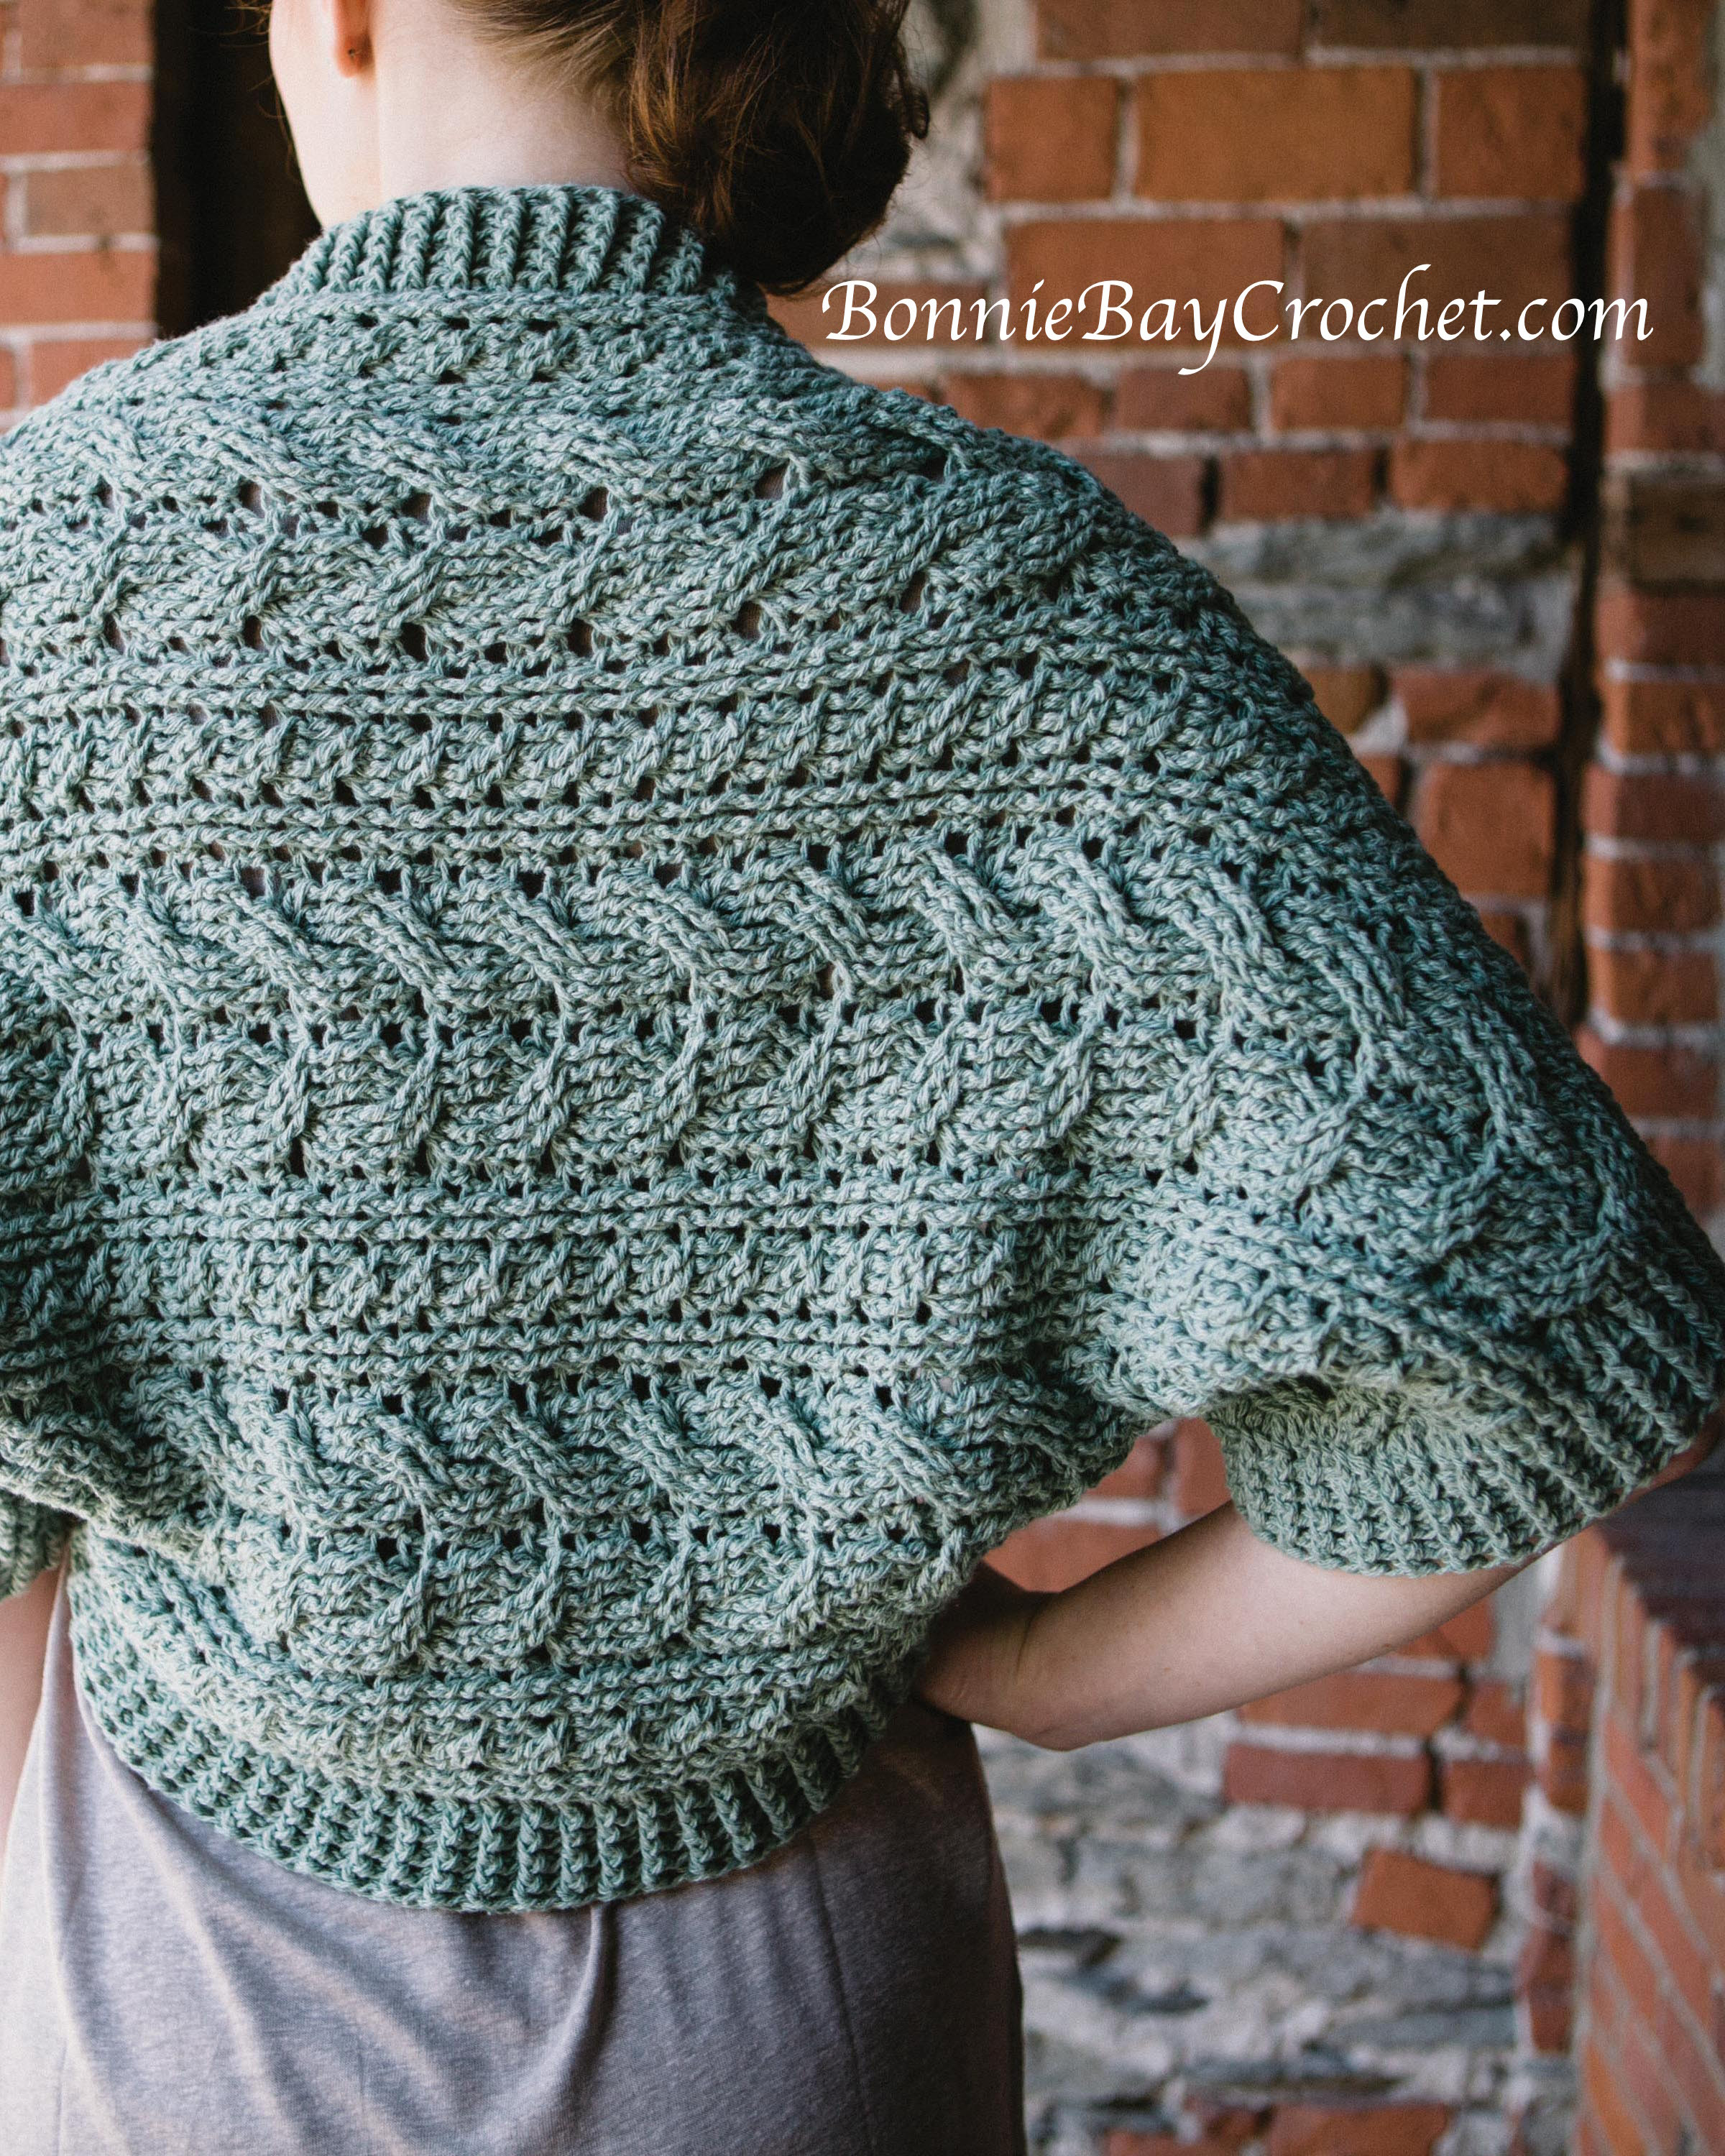 Crochet Cable Pattern Lovely Bonnie Bay Crochet Blog Celtic Cable Crochet 18 Of Perfect 40 Ideas Crochet Cable Pattern